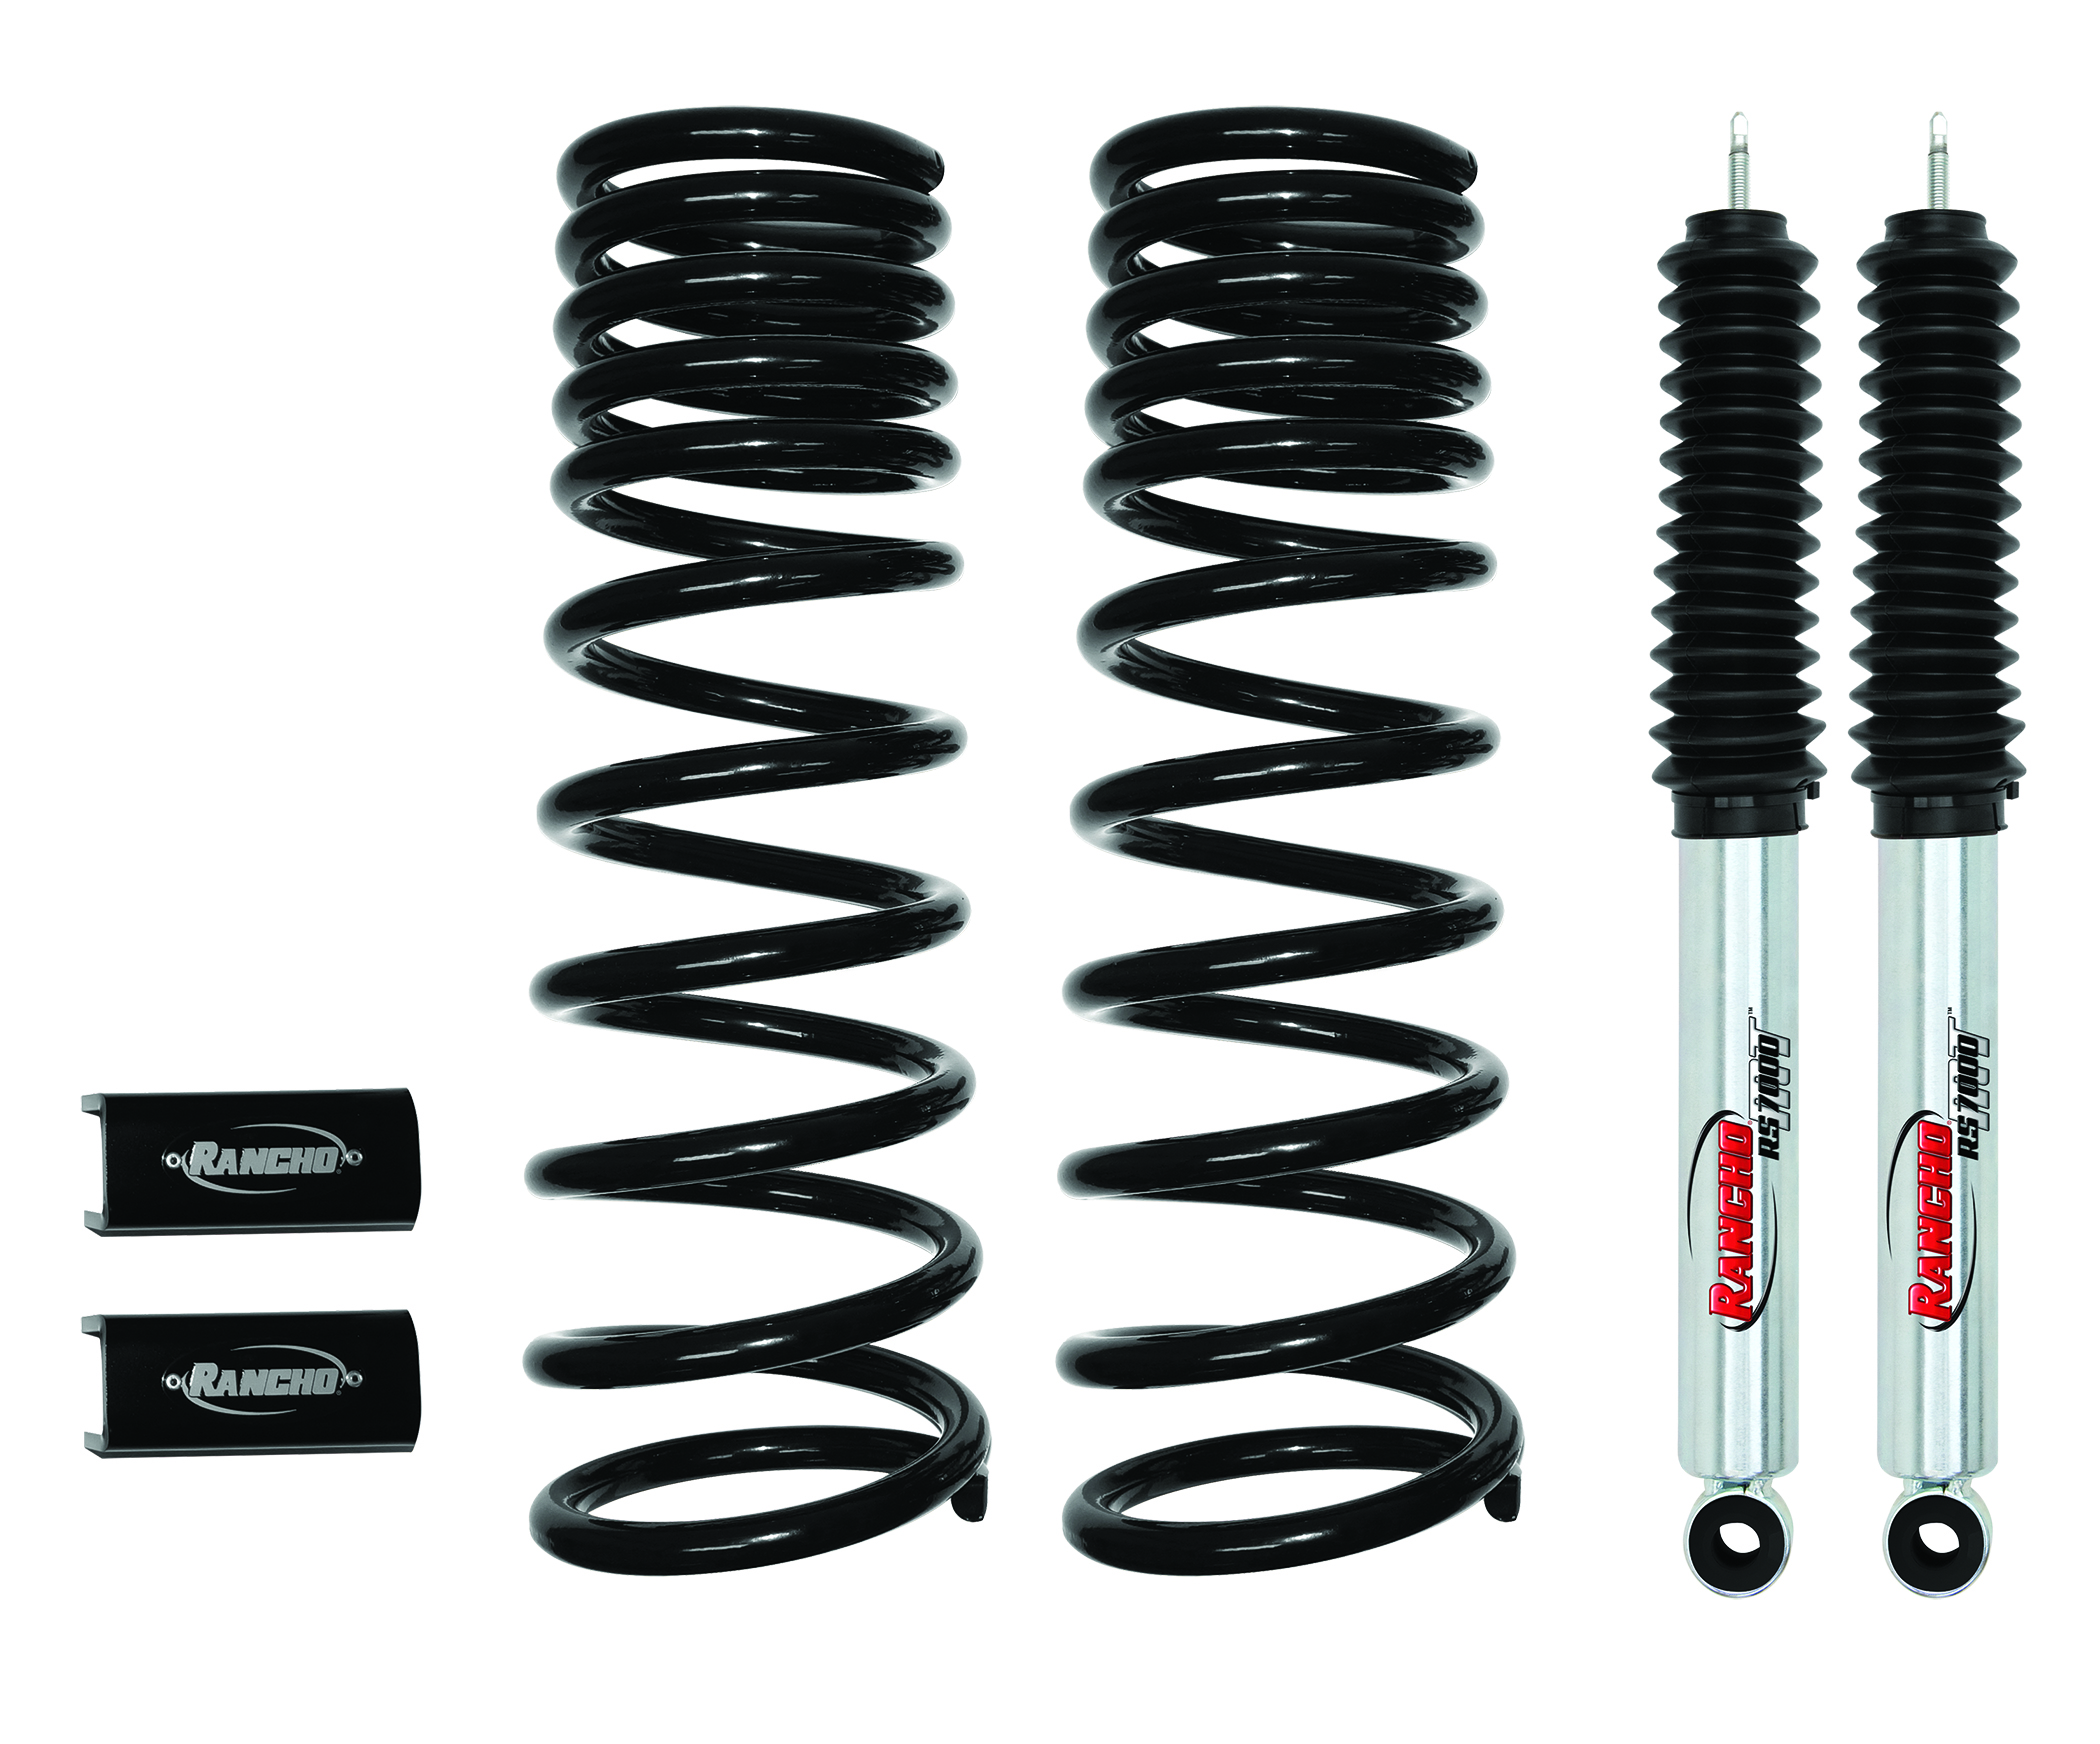 Rancho Introduces Level It Suspension Kit For Dodge Ram 2500 3500 Upgrade Rs7000mt Monotube Shocks Provide Resiliency Against Heat And Are Ideal Extreme Off Road Use Larger Wheel Tire Packages